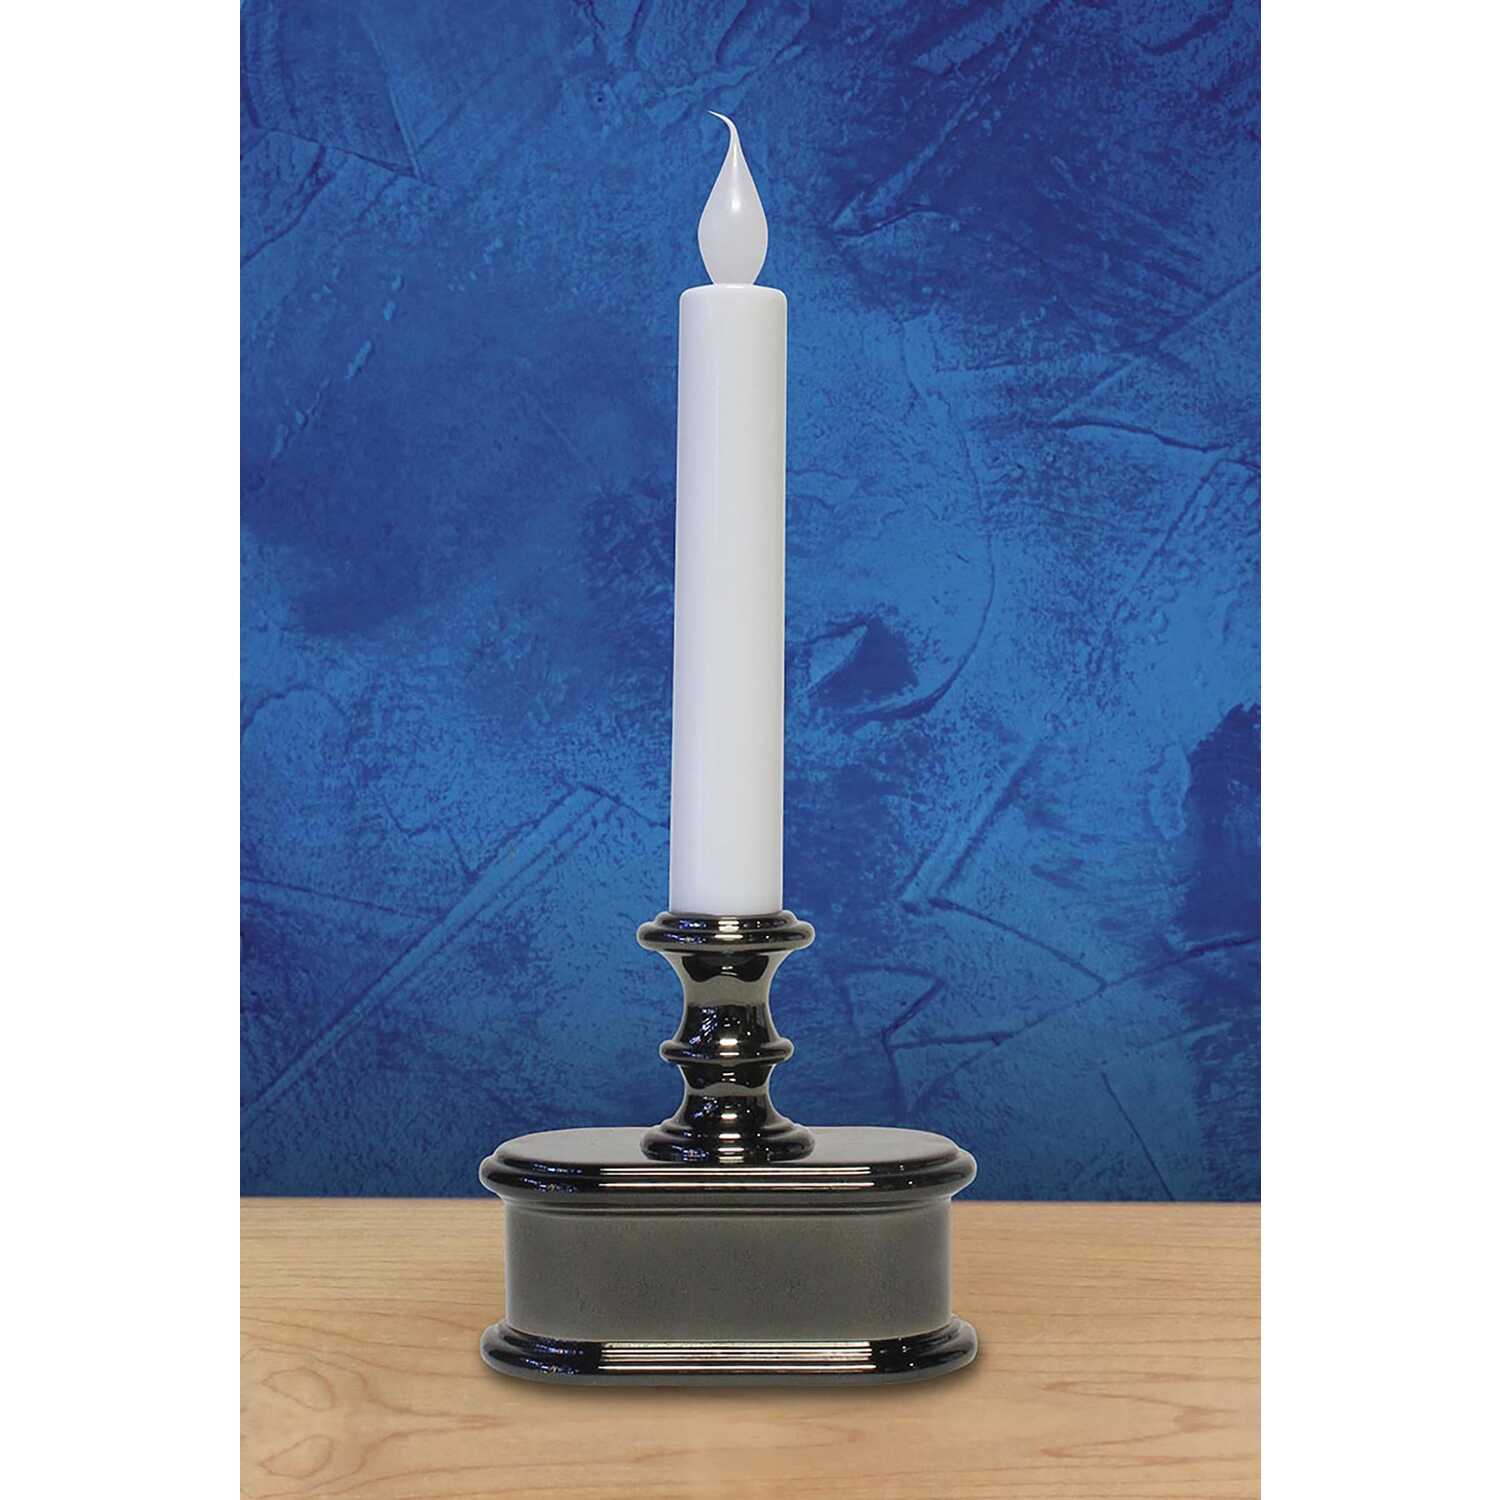 Celebrations  No Scent Polished Nickel  Auto Sensor  Candle  9 in. H